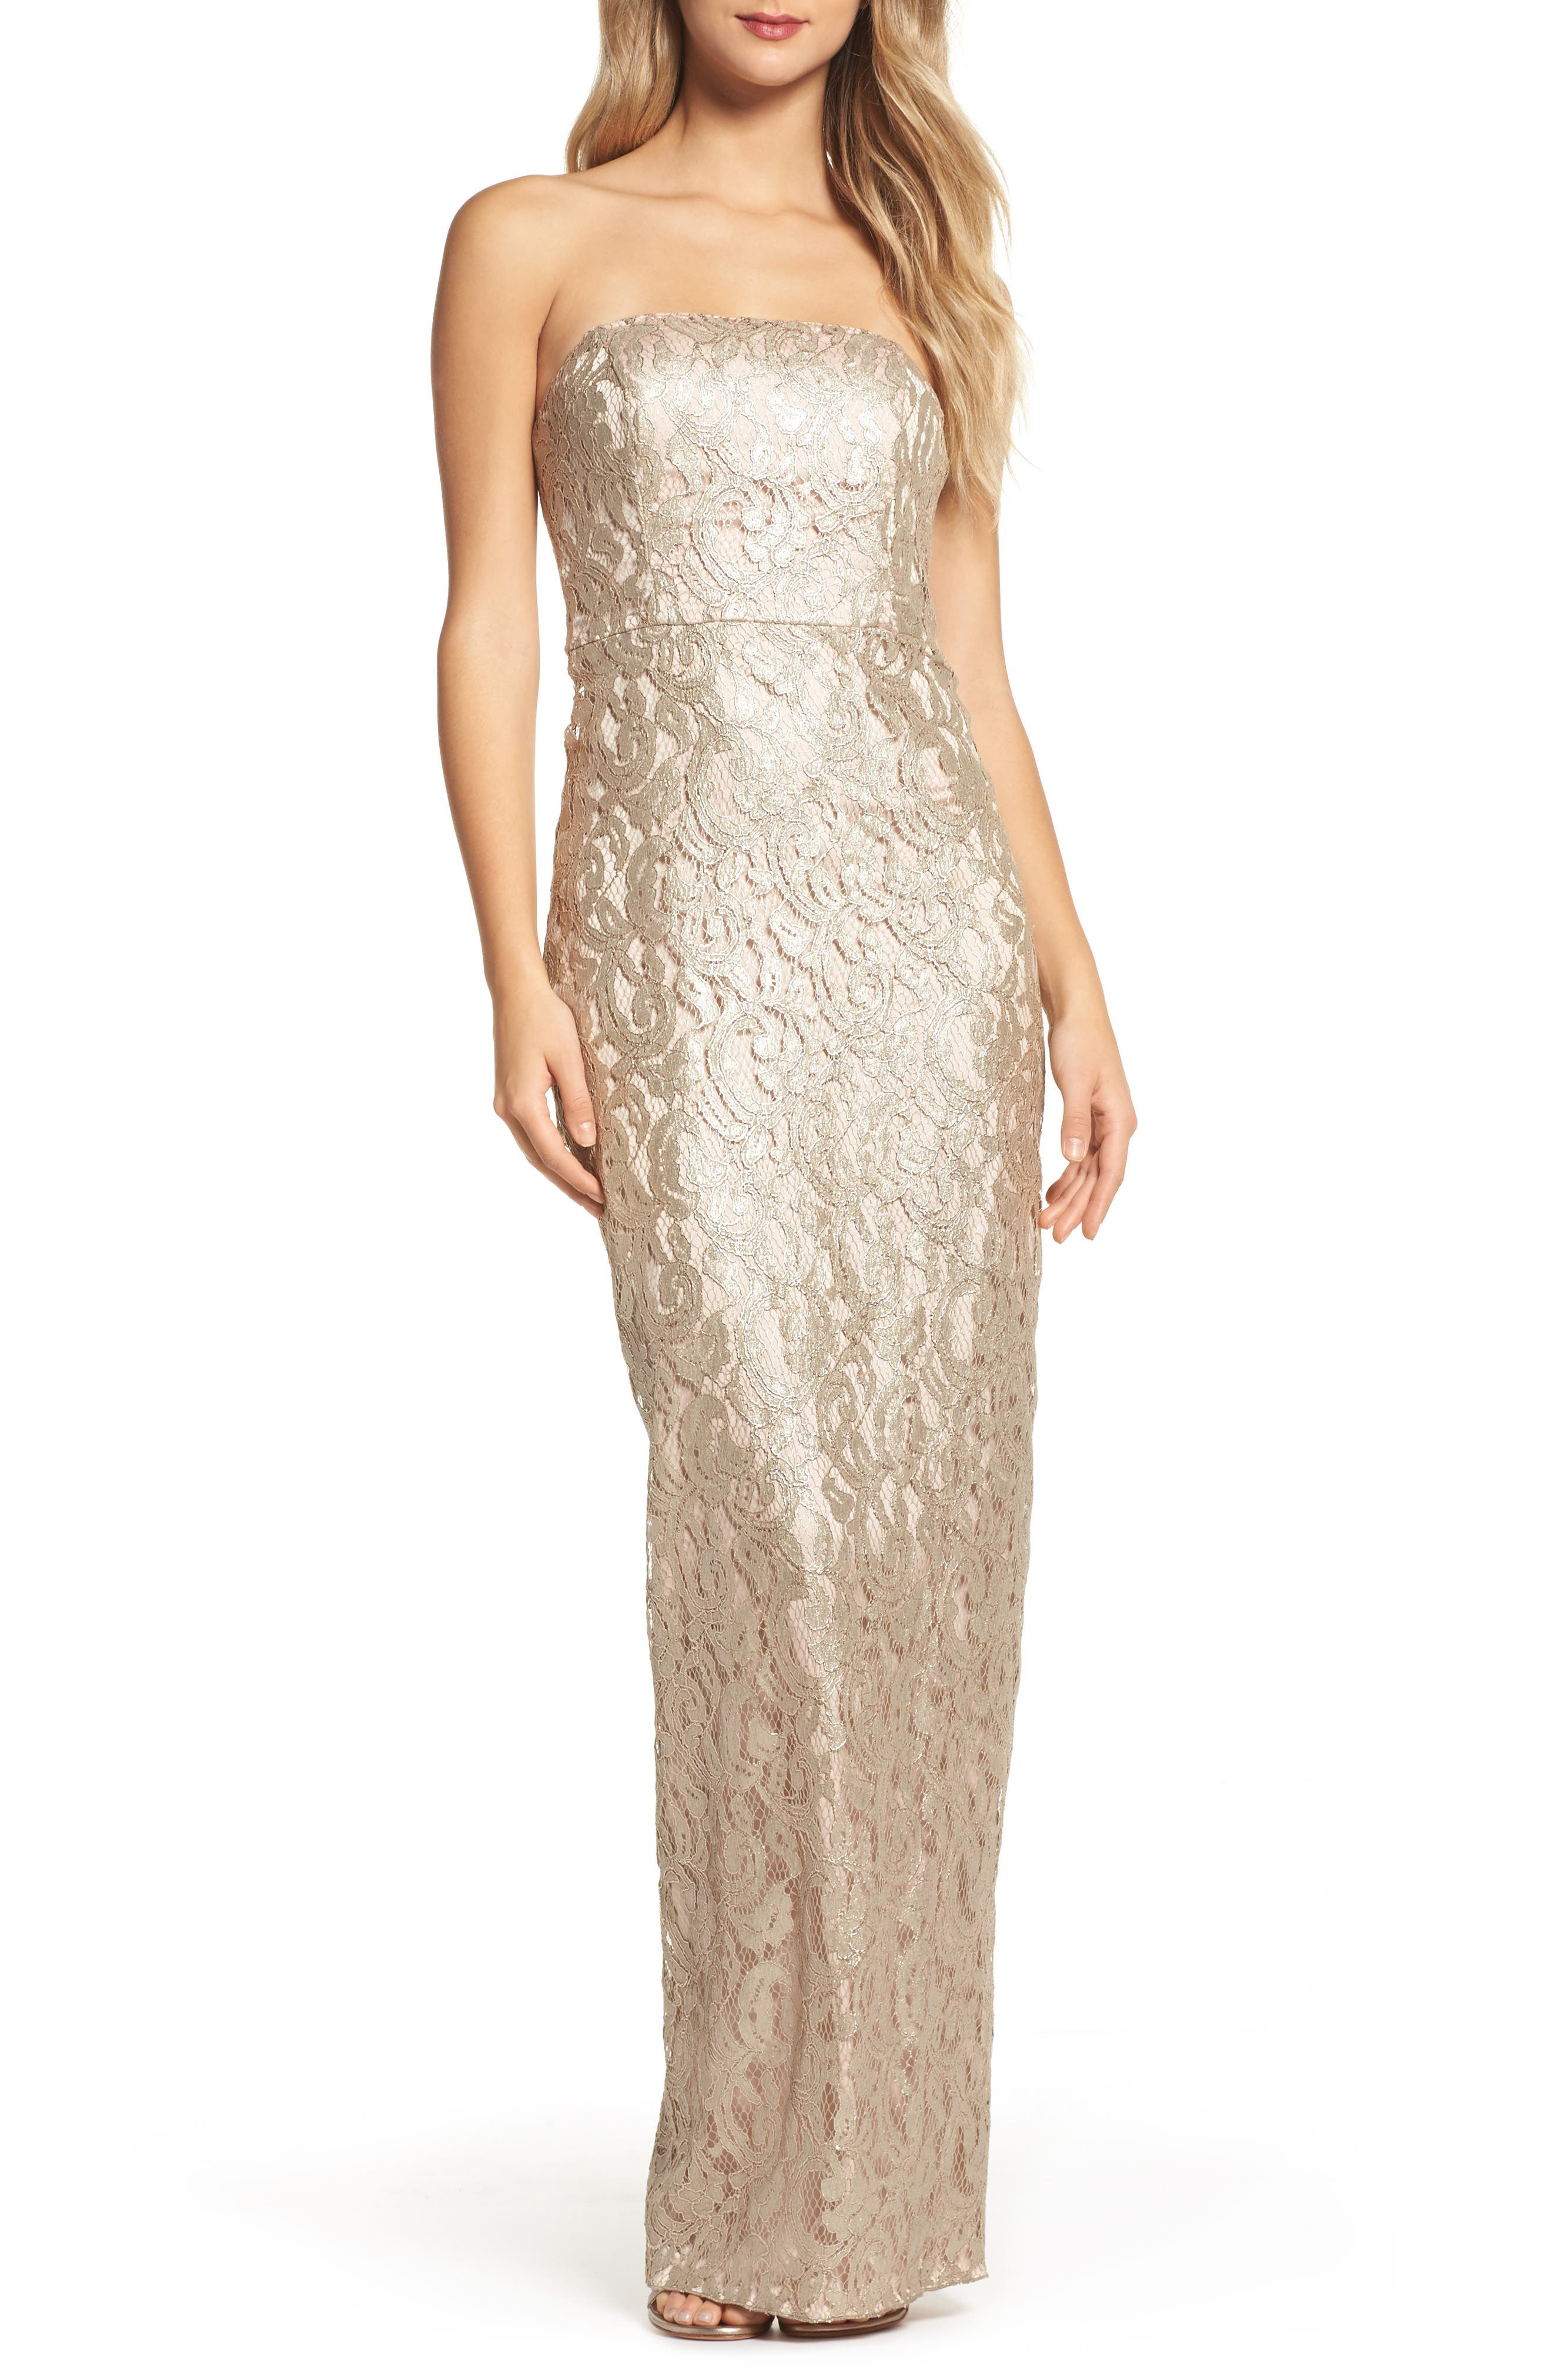 Starla Ruffle Back Strapless Lace Gown,                         Main,                         color, Gold